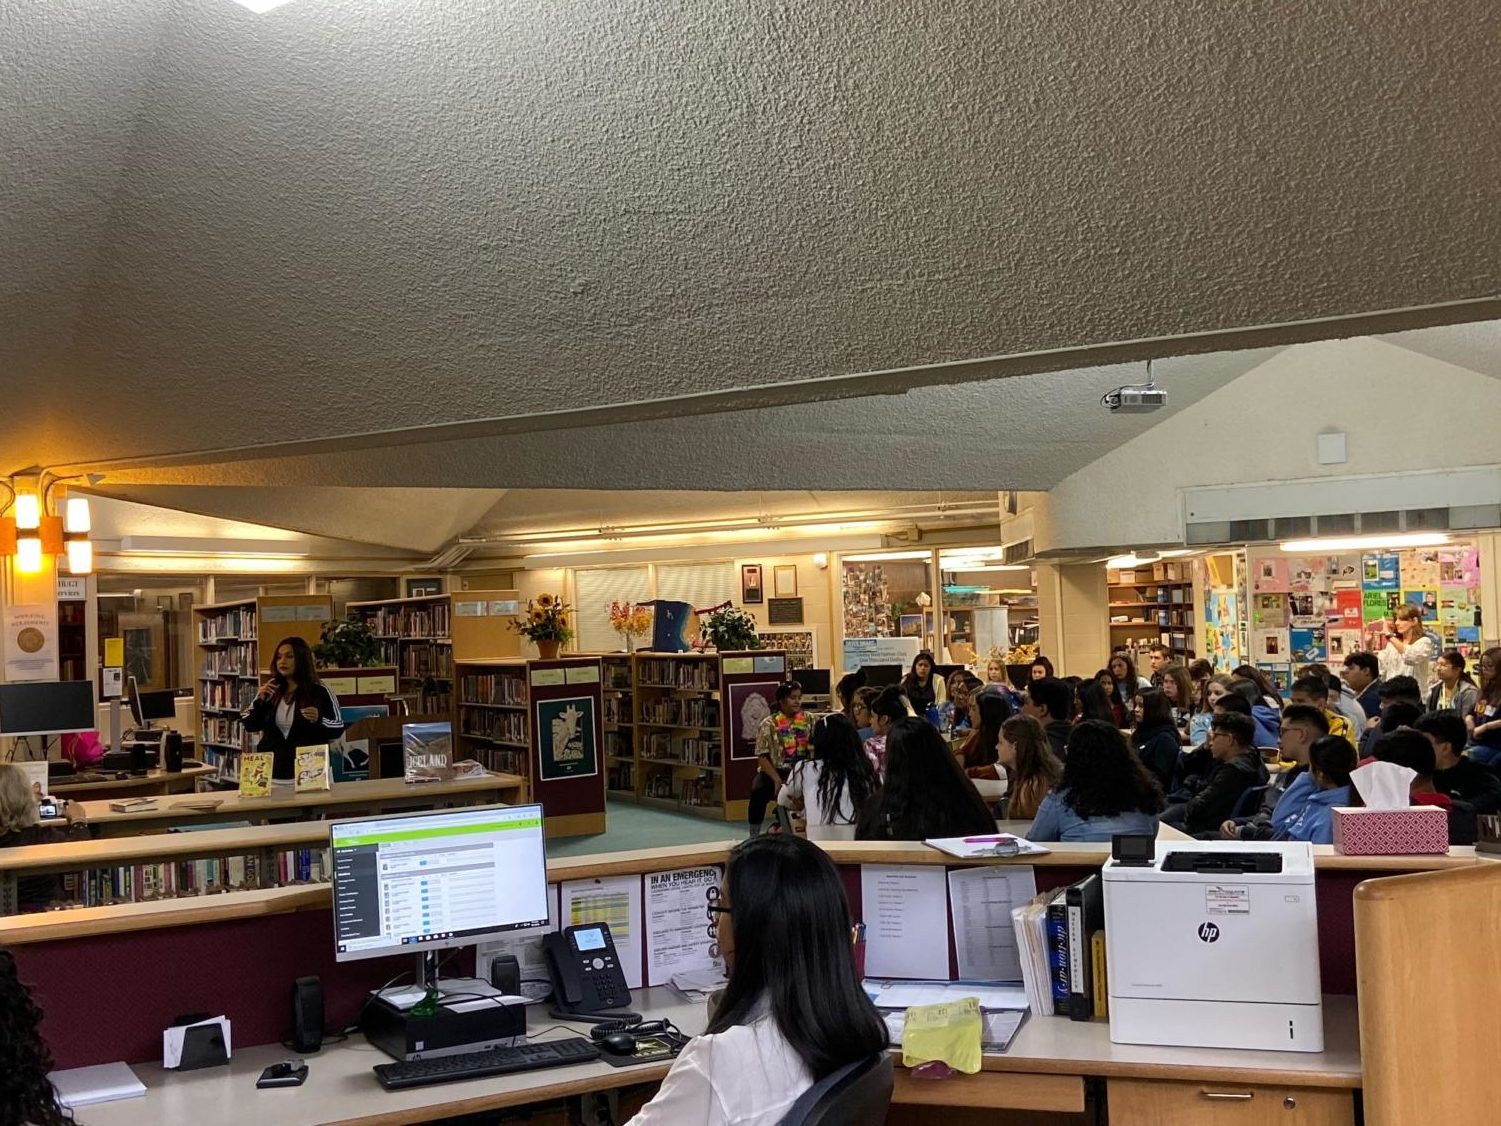 Los Angeles-based Chicana poet and activist, Angela Aguirre, left, addresses the audience while sophomore AVID students listen to her.